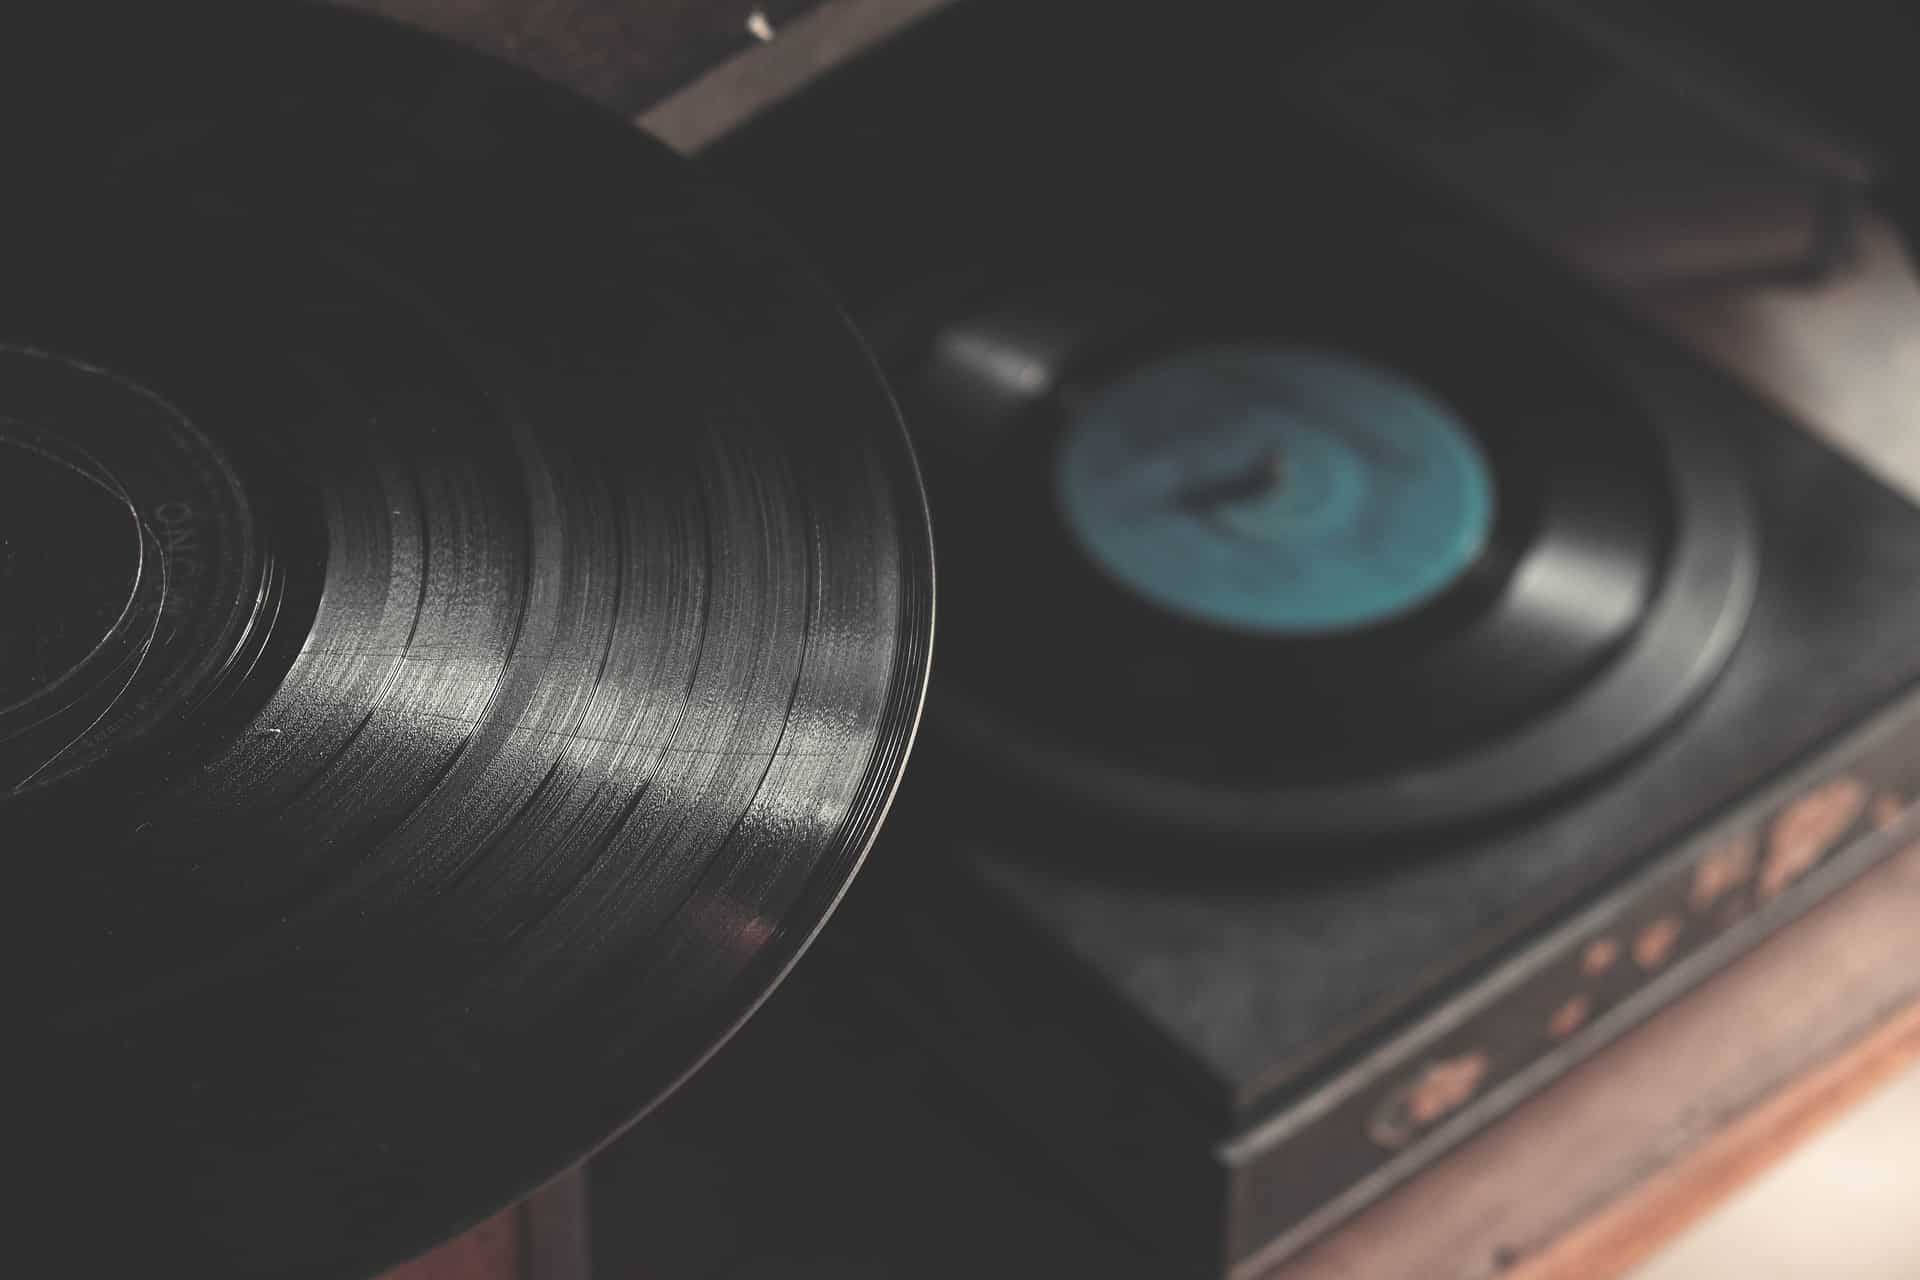 An overview of the age of the vinyl record